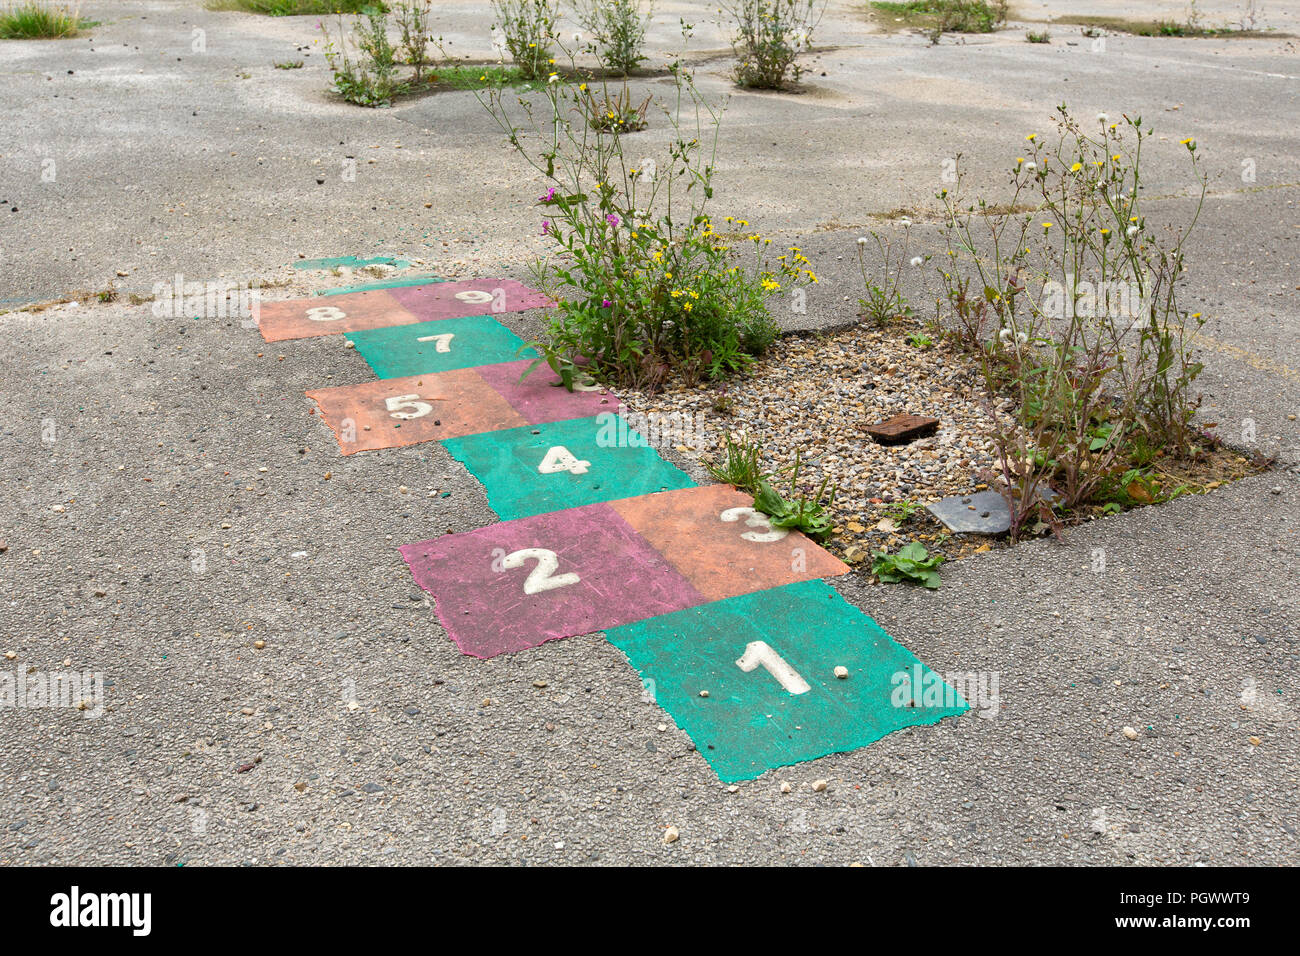 A hopscotch game in a disused school playground - Stock Image